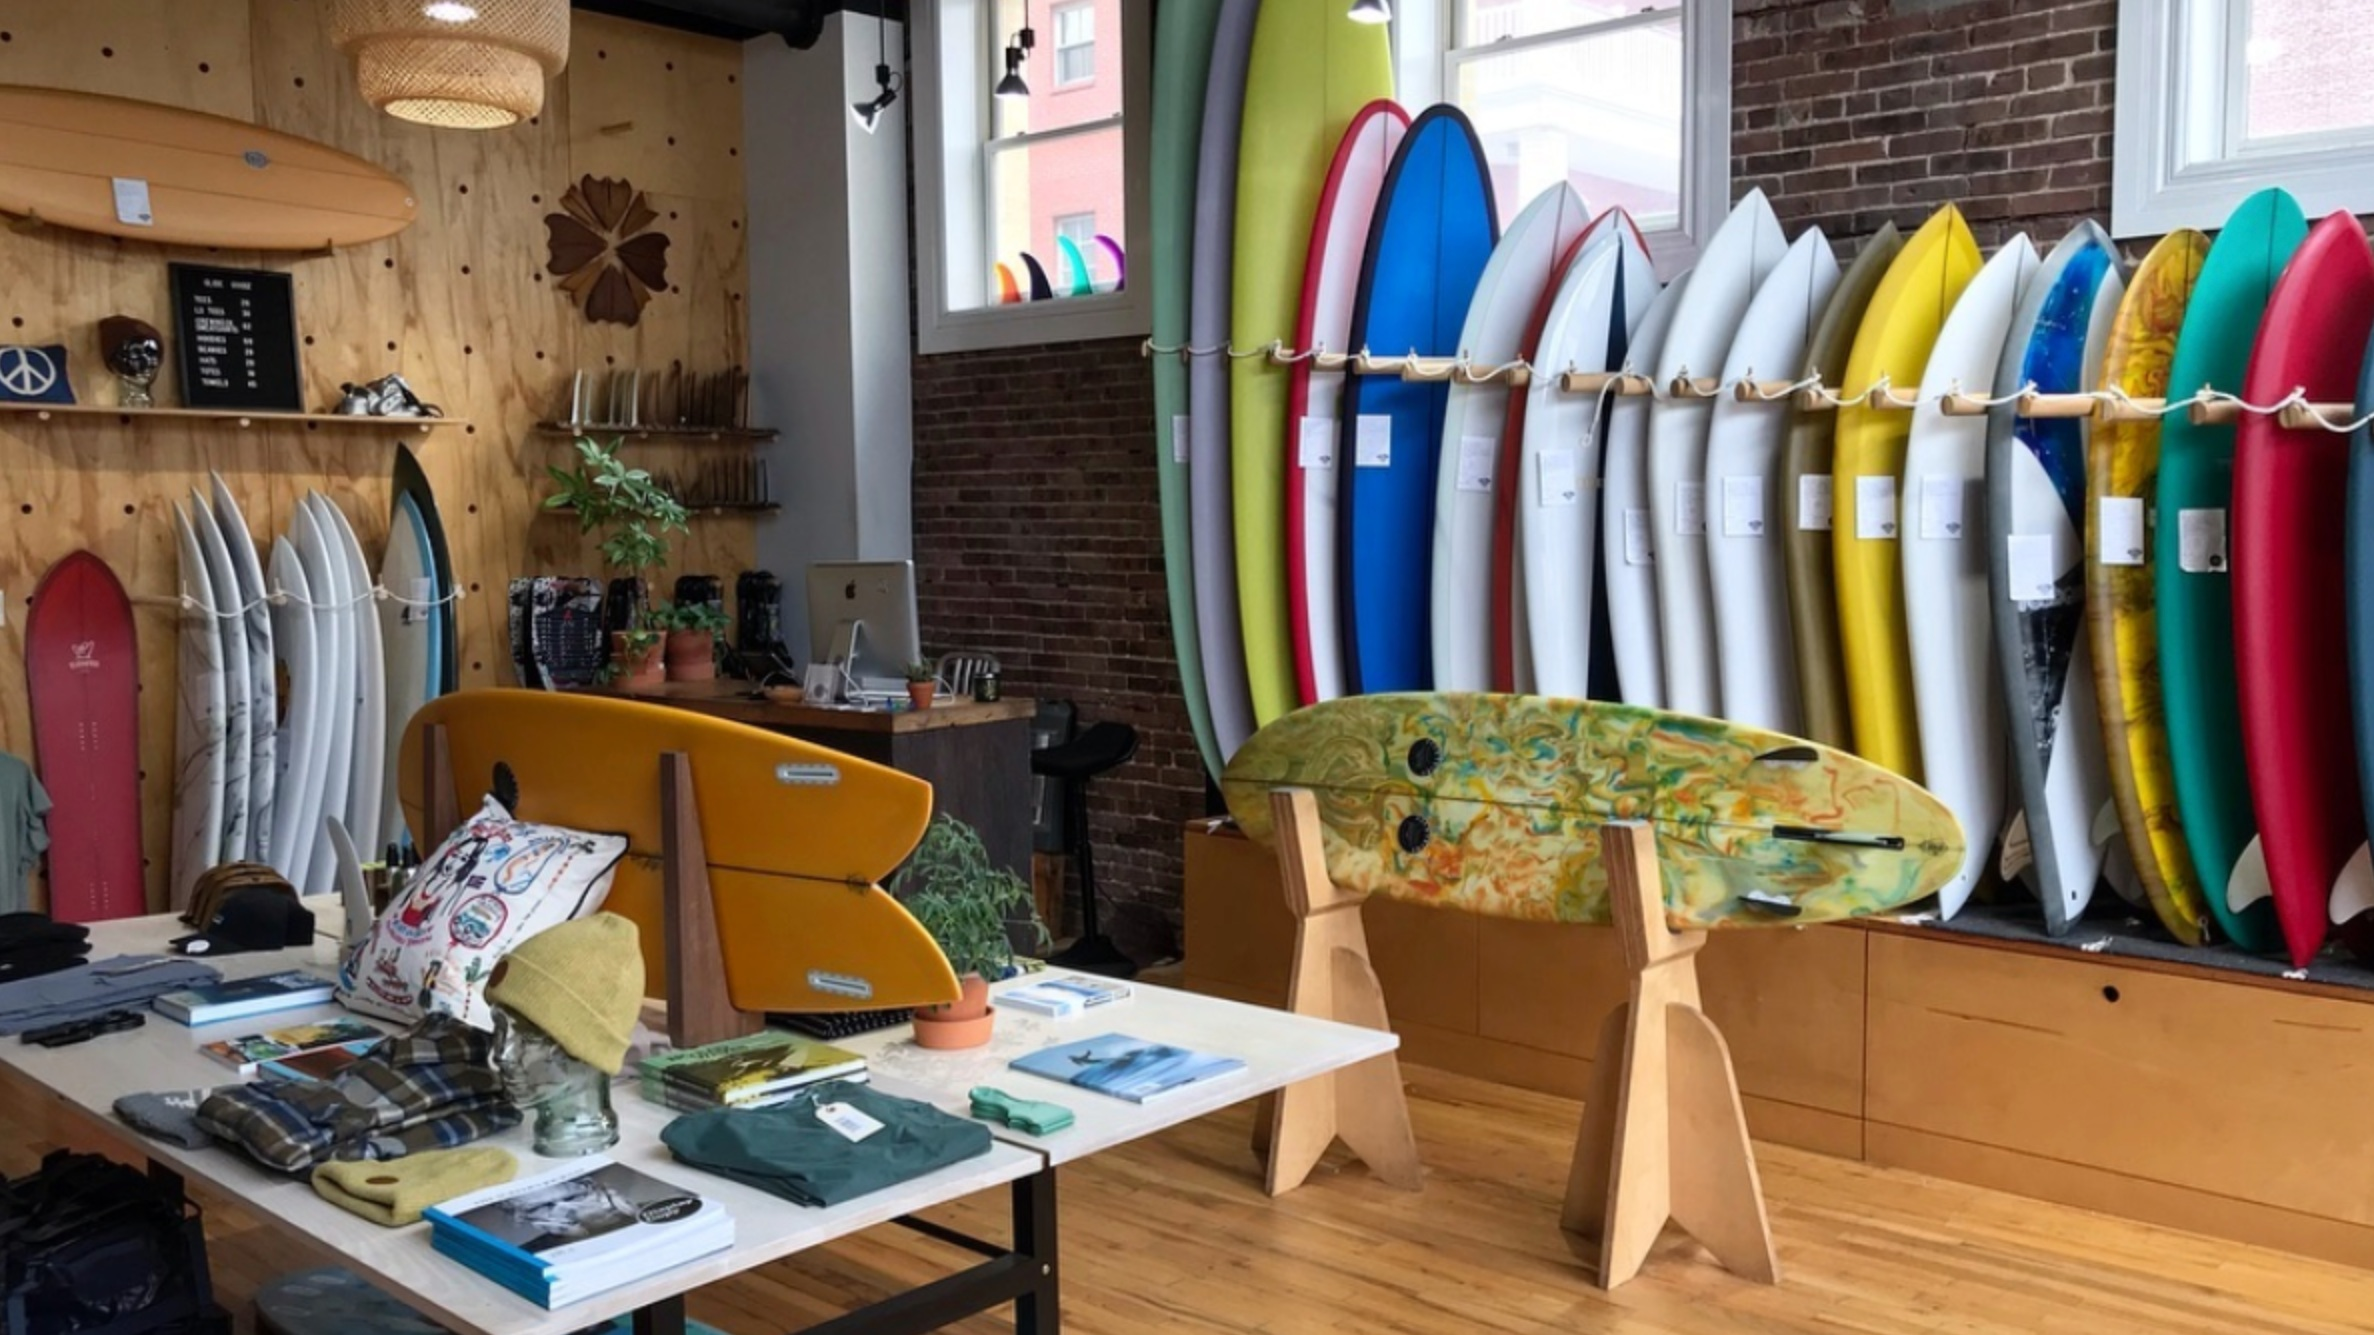 Surf Glide Co - 520 Bangs Ave, Asbury Park, NJ 07712Glide Surf Co. is a surf lifestyle store located in historic downtown Asbury Park, NJ.WEBSITE